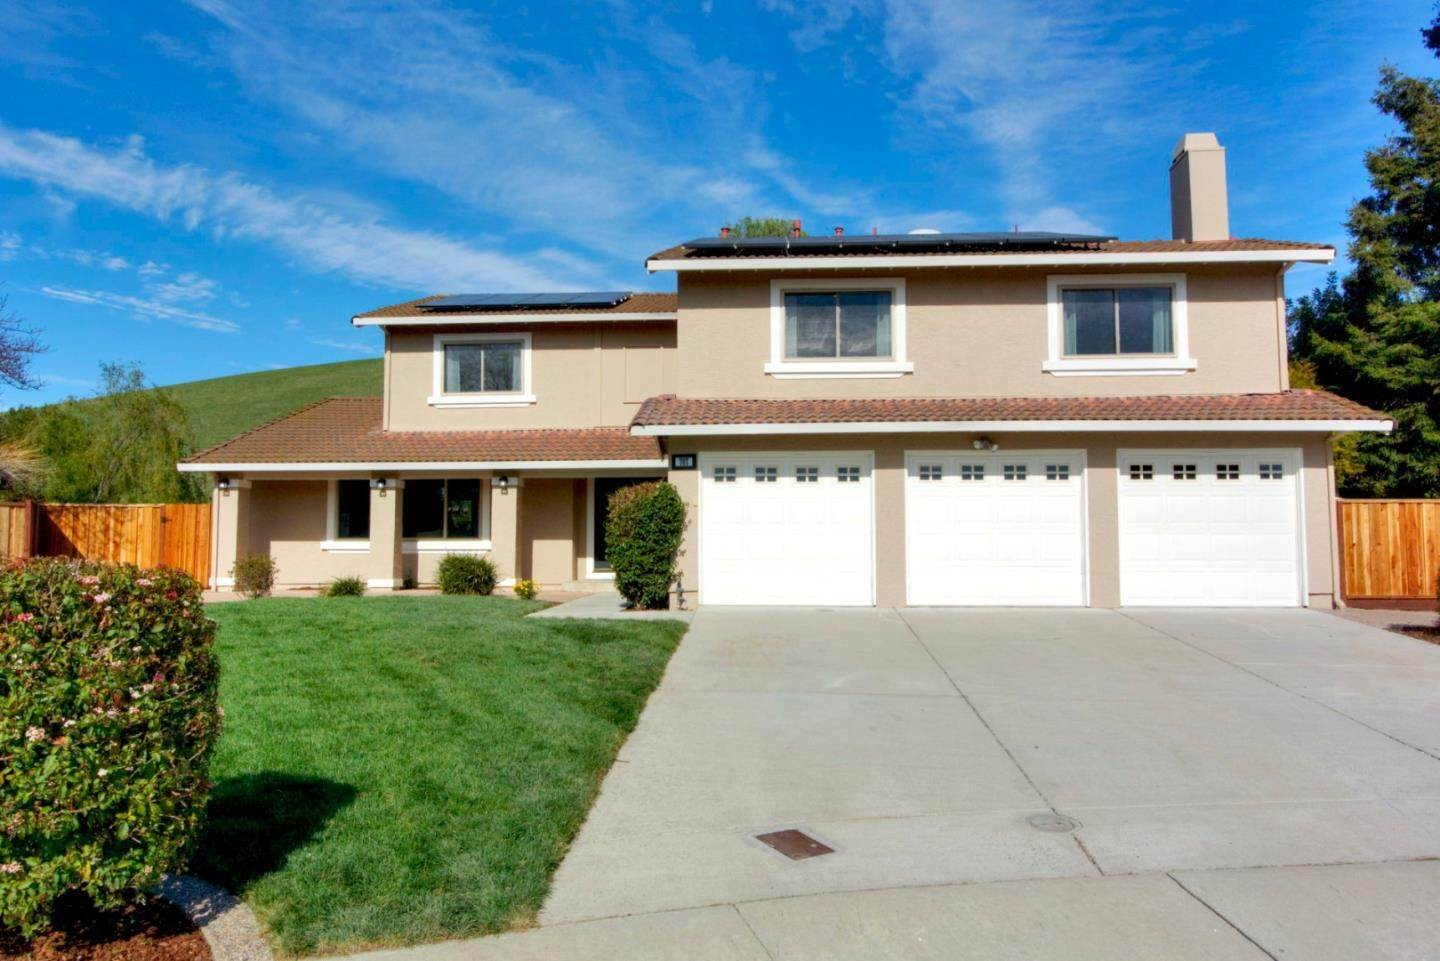 Single Family Homes for Sale at 707 Cardiff Place Milpitas, California 95035 United States